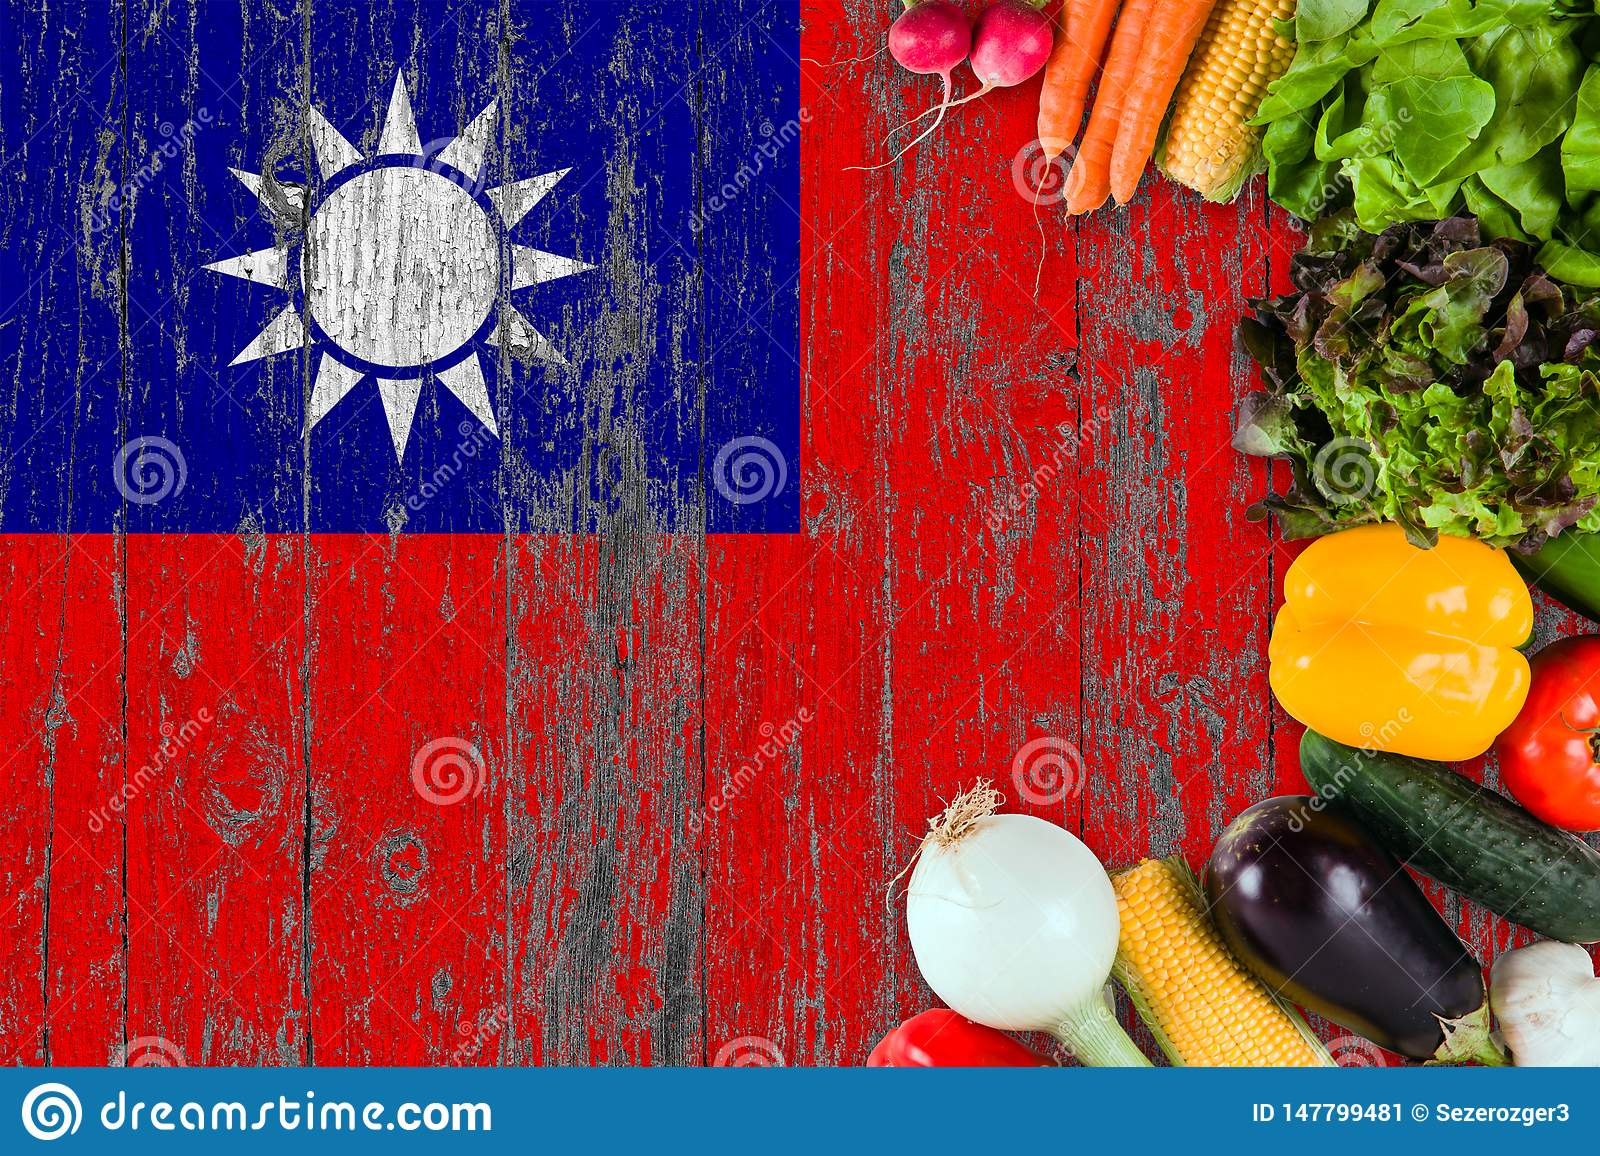 Fresh vegetables from Taiwan on table. Cooking concept on wooden flag background